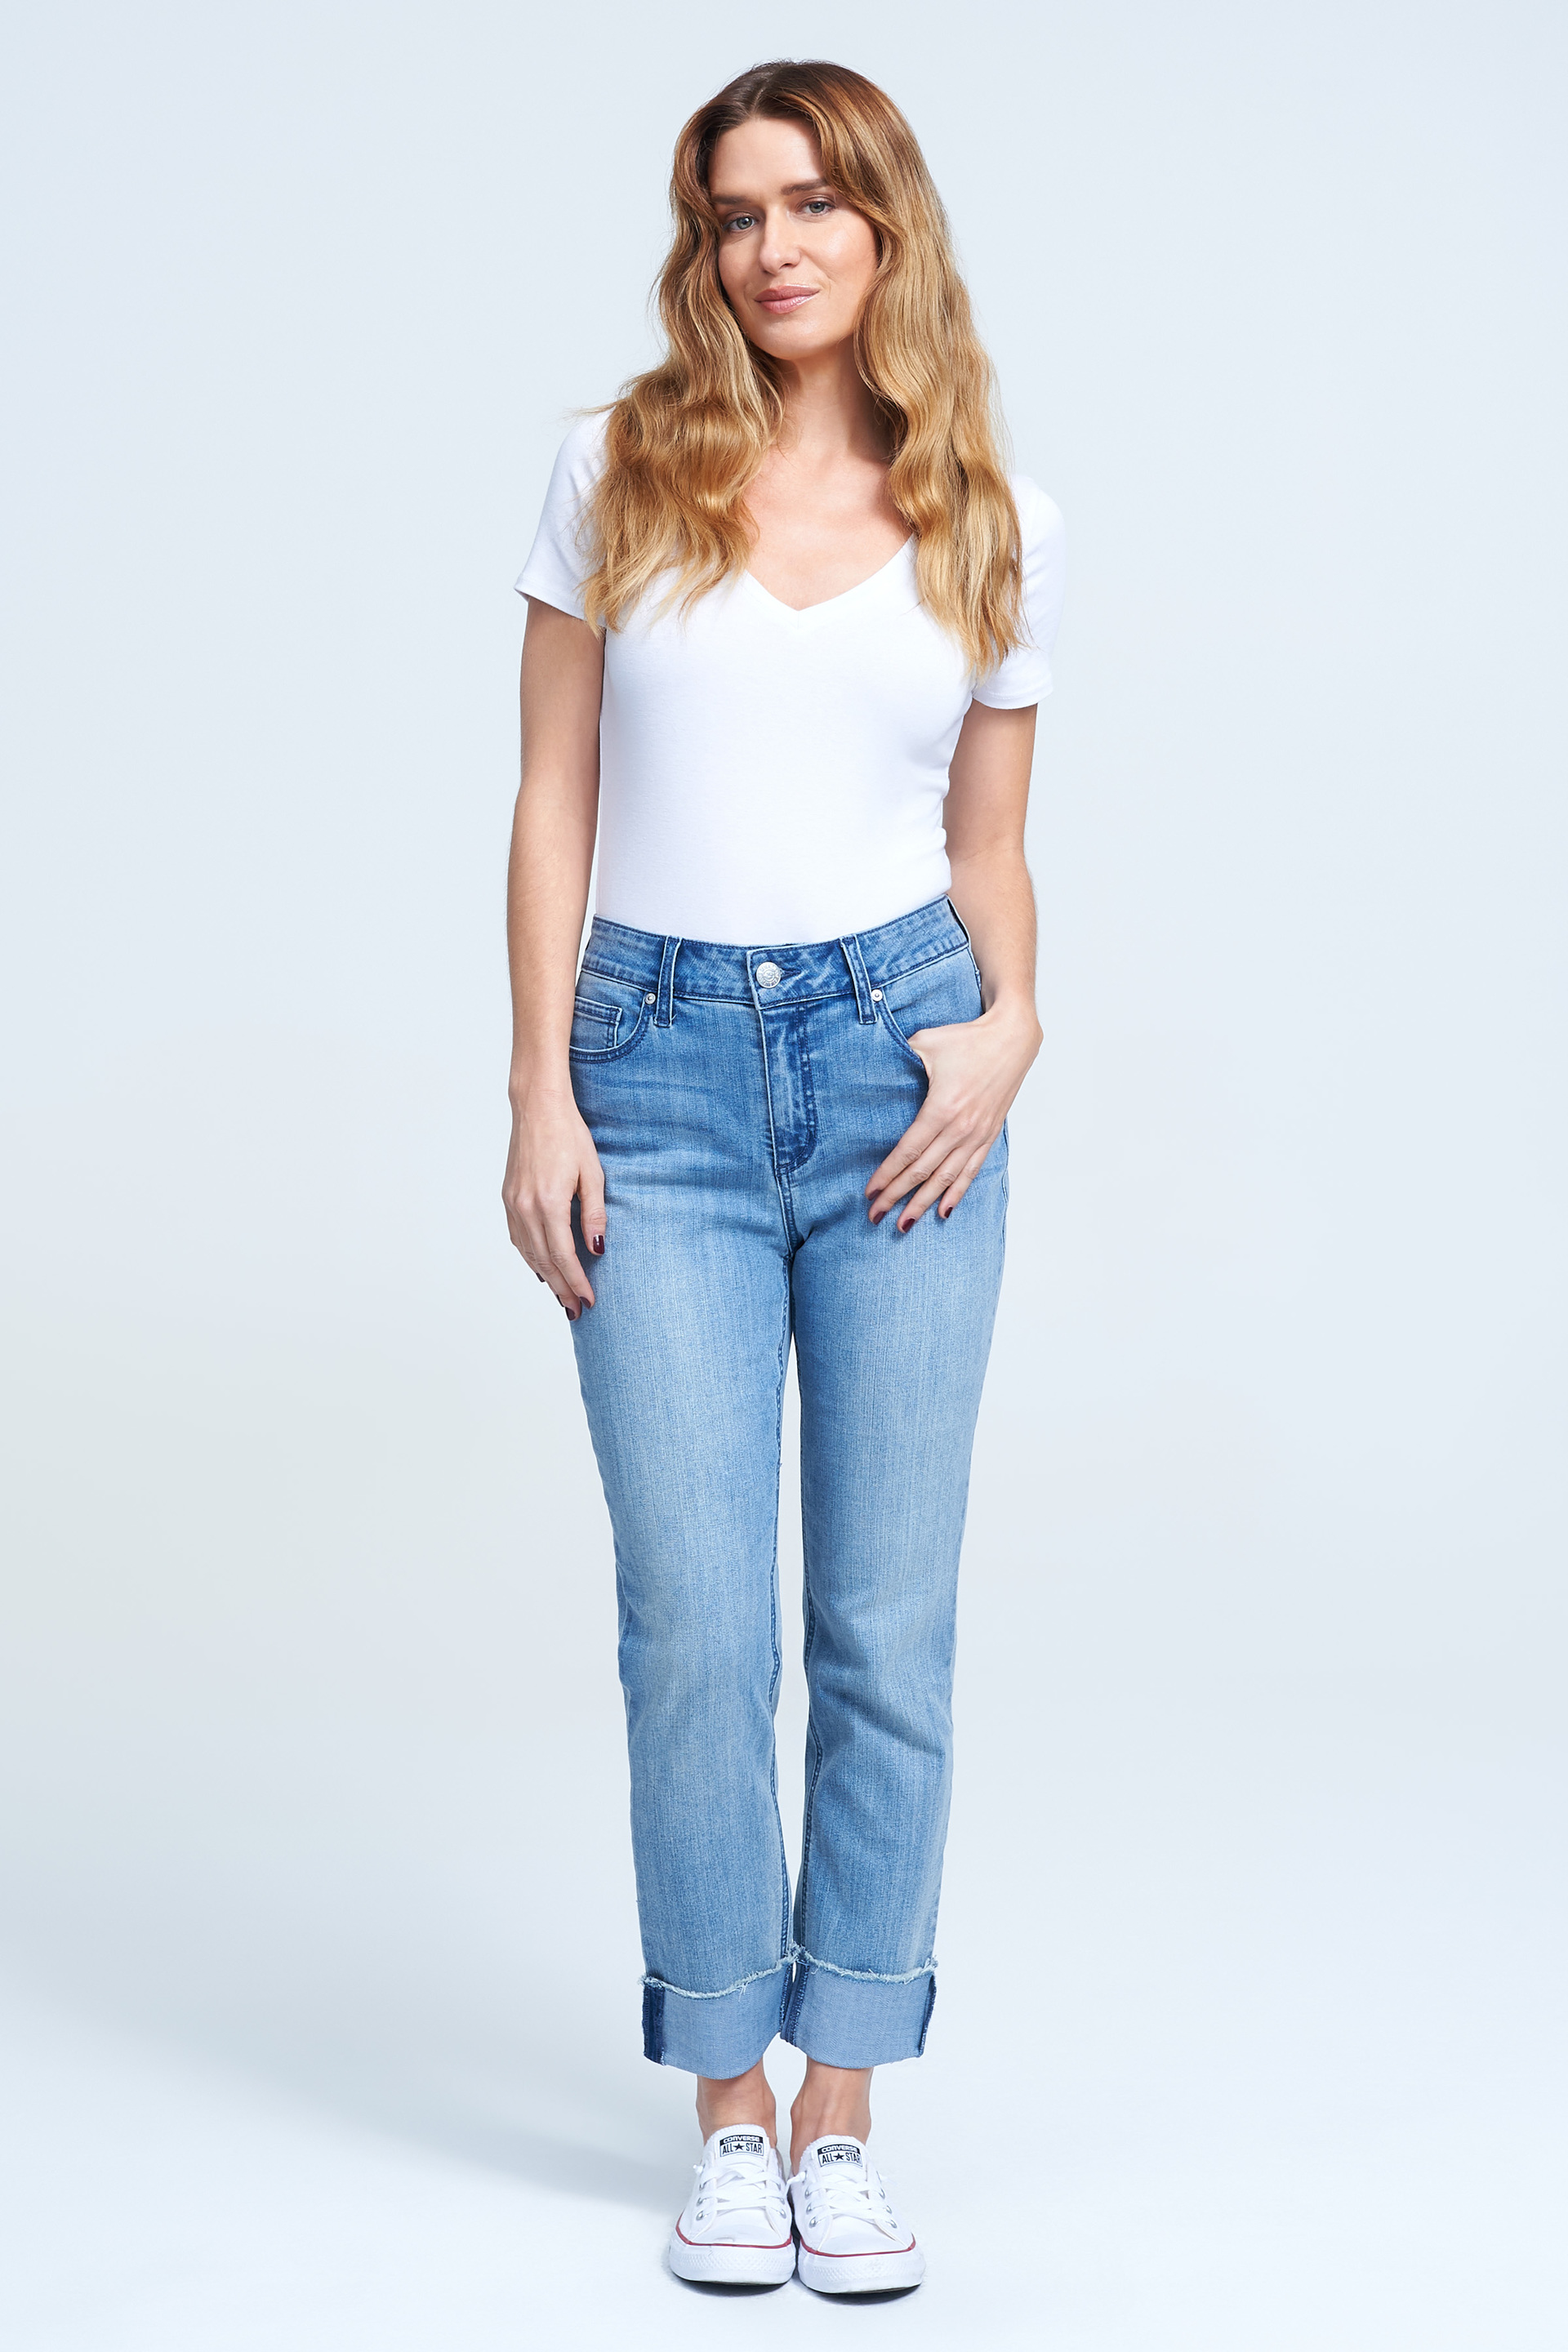 Seven7 Jeans High Rise Cuffed Slim Straight Jean <p>Effortless cool is what these slim-straight jeans do best. Crafted from stretch denim in a faded light-blue wash, the high-waisted pair features a '90s-inspired fit styled with cuffed hems and raw edges for that easygoing vintage look we all love.</p>